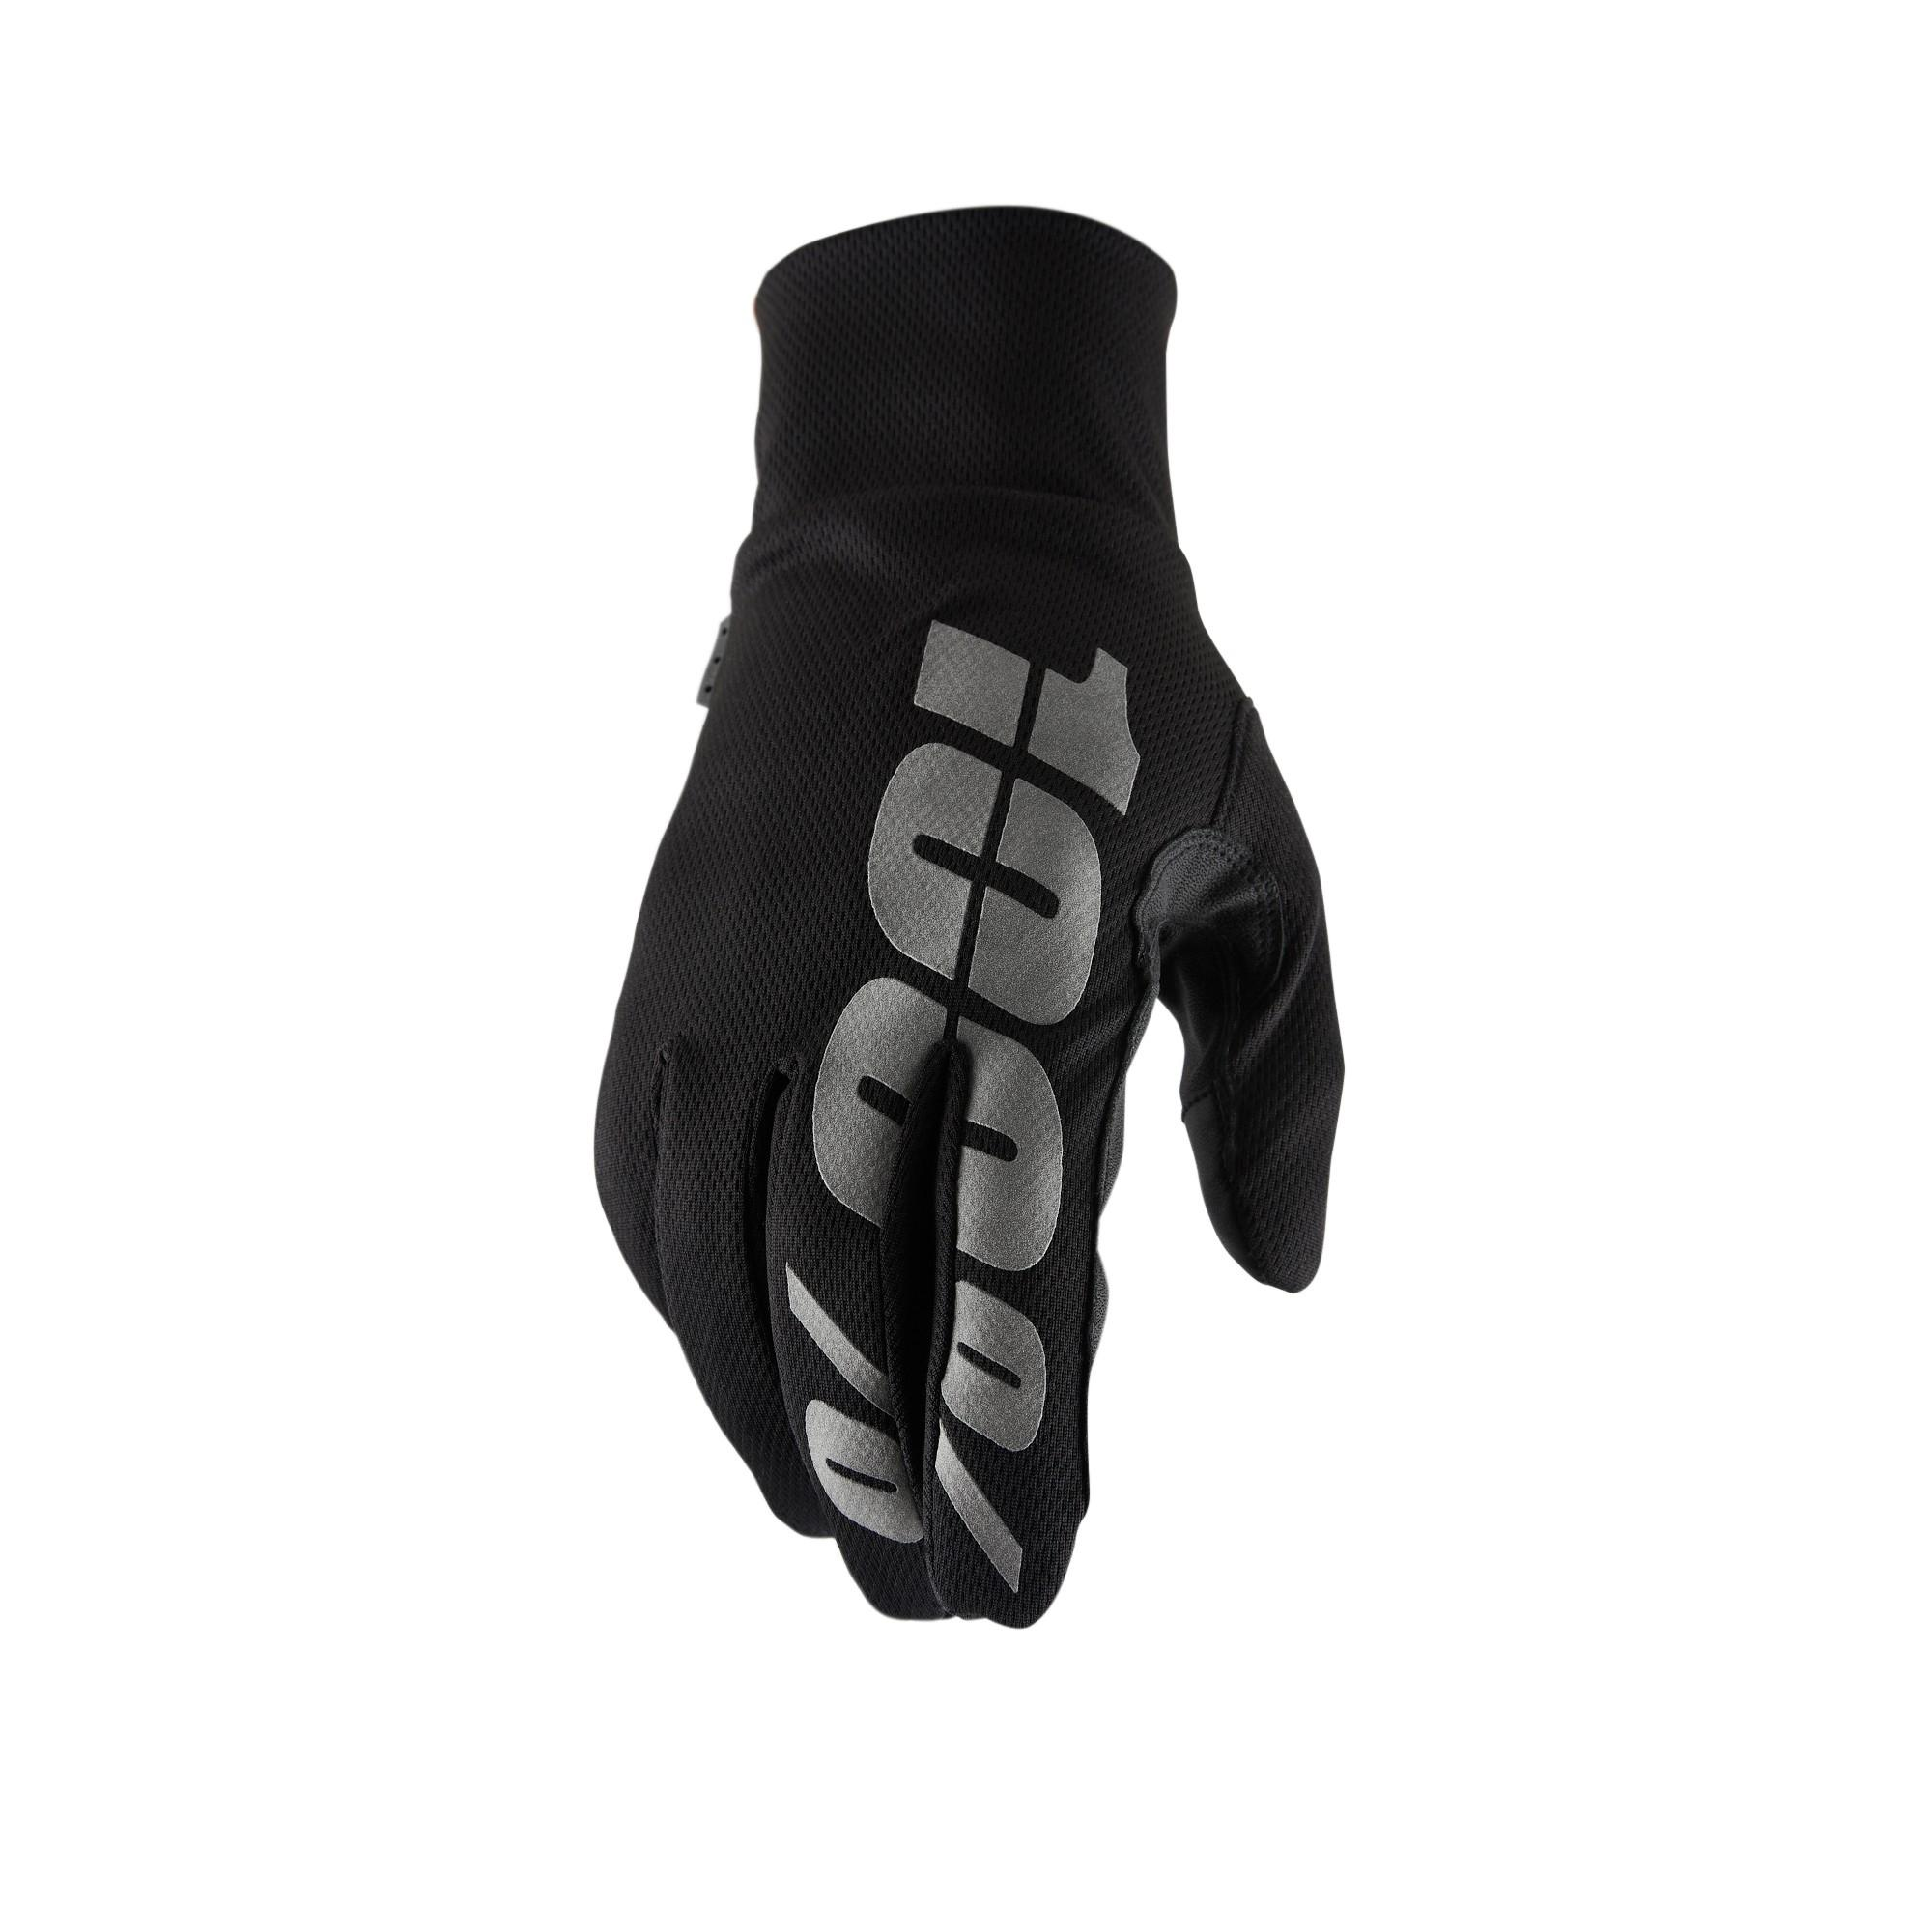 HYDROMATIC Waterproof Glove Black